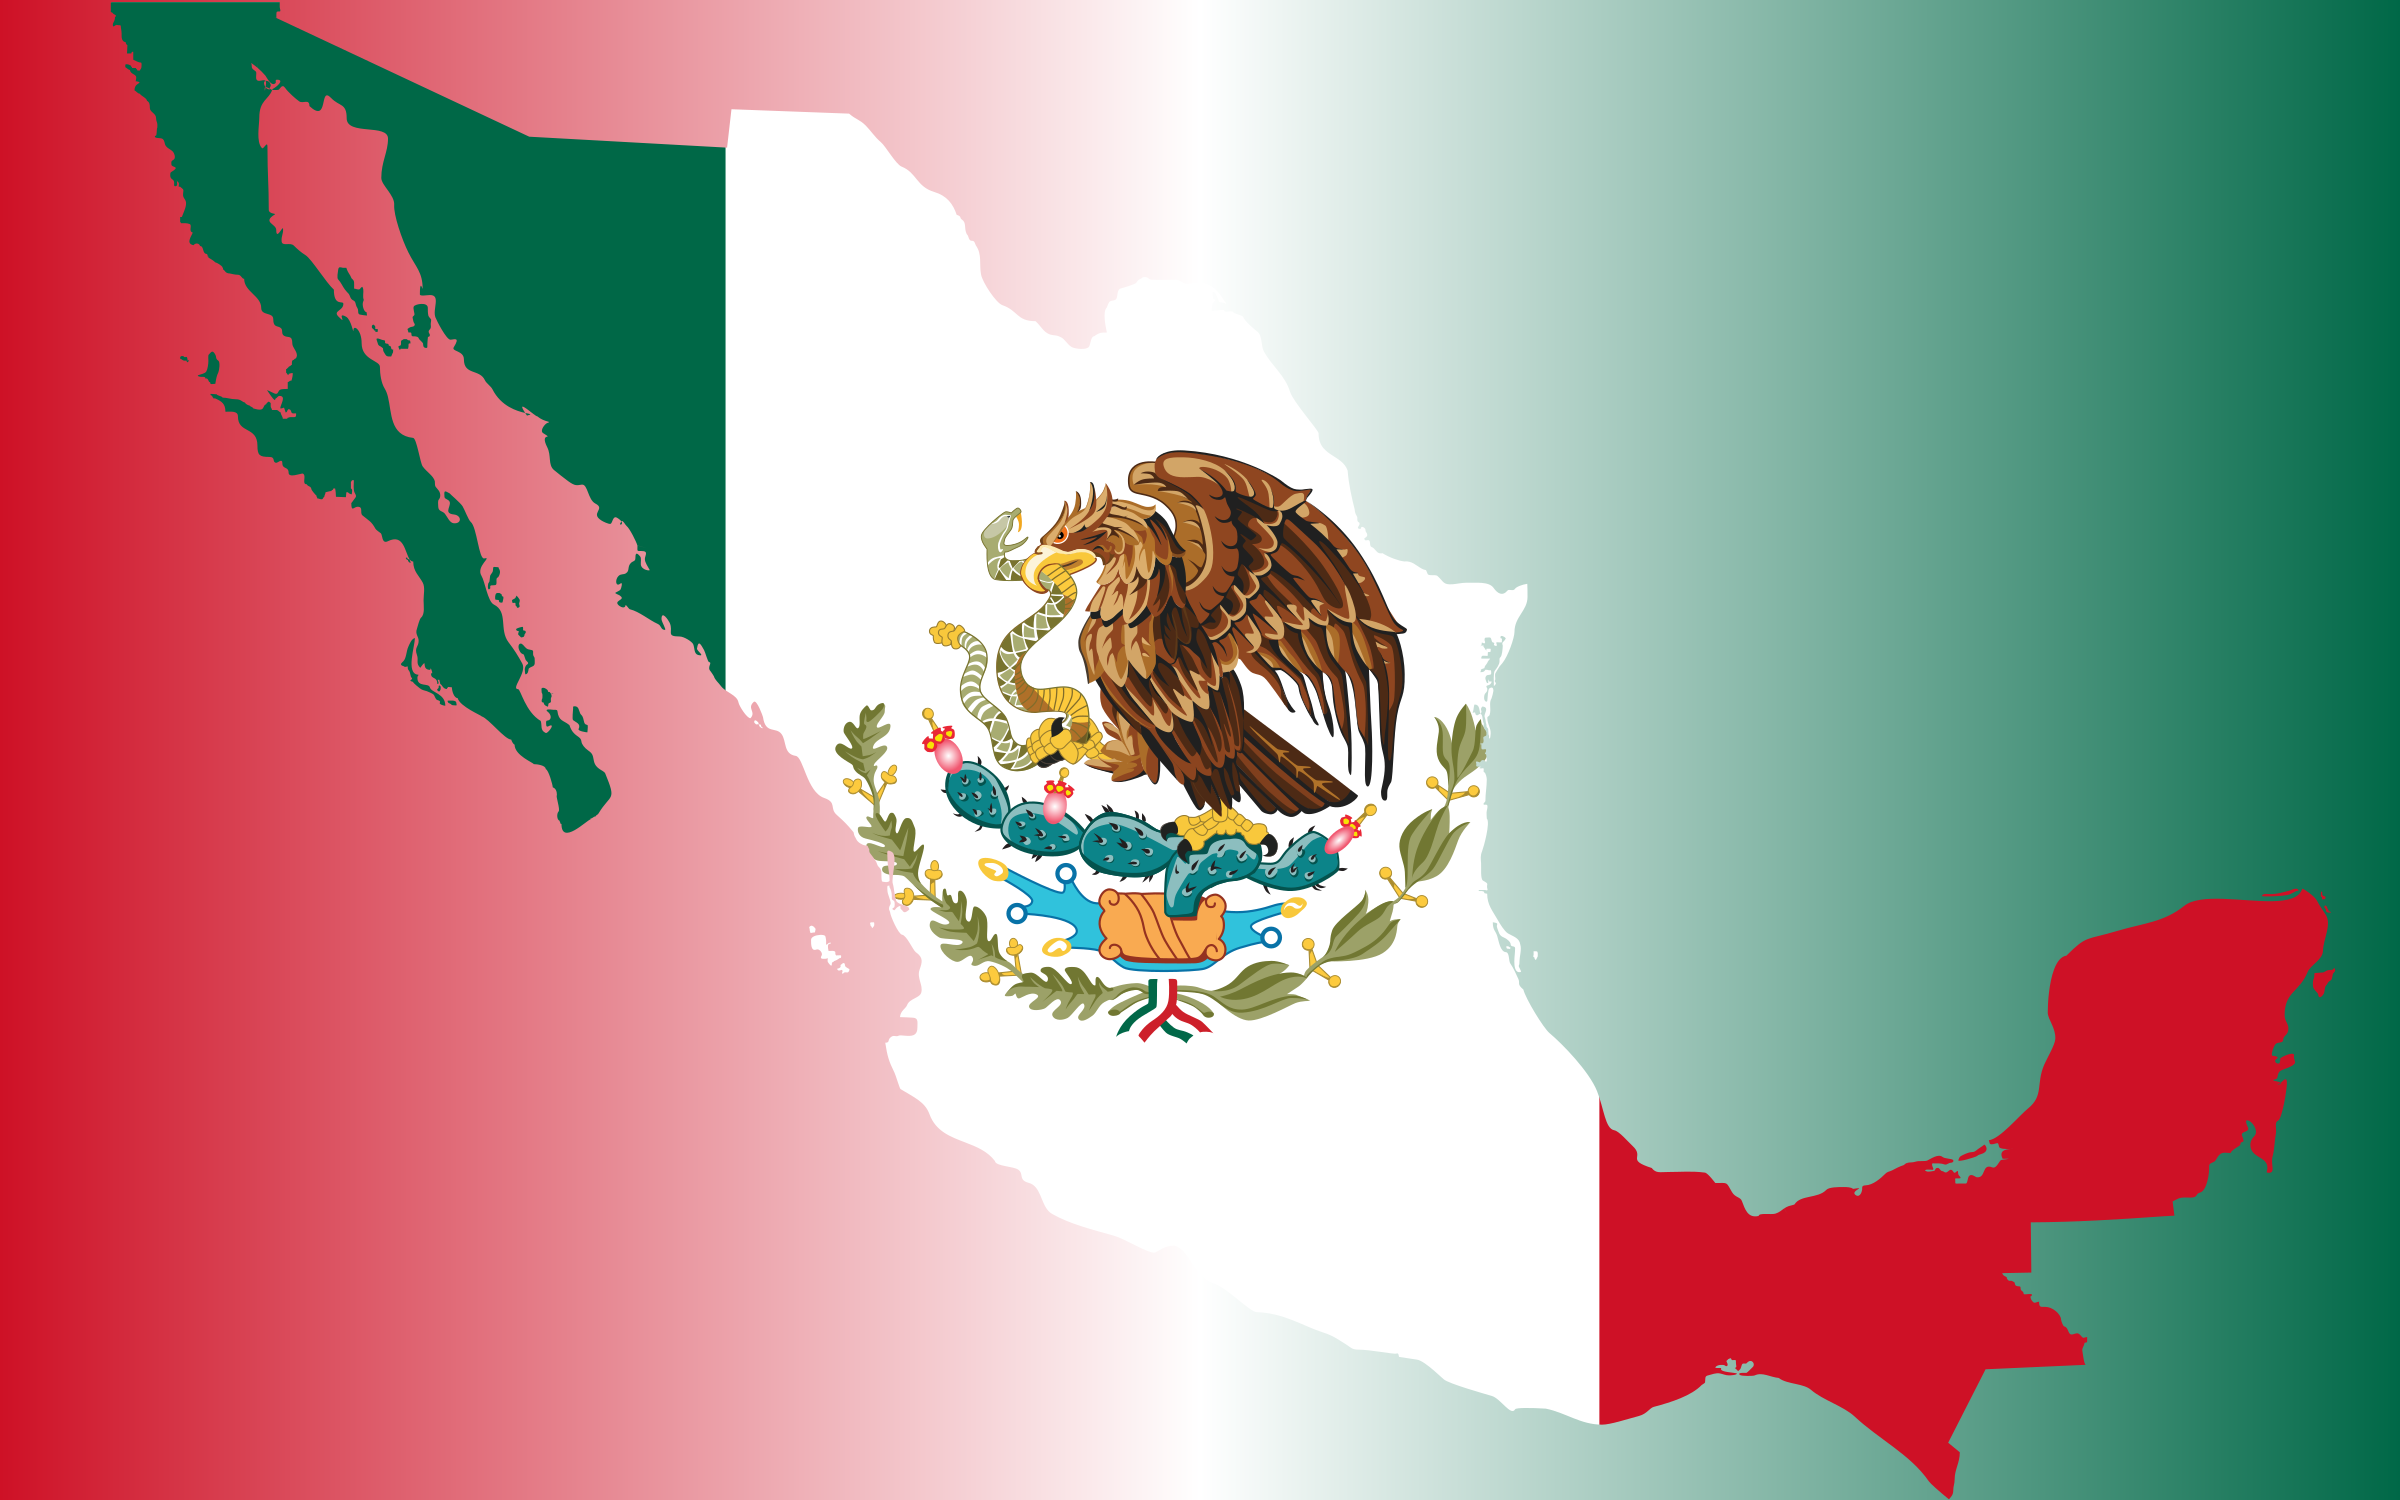 mexico flag symbol eagle wallpaper for mobile download